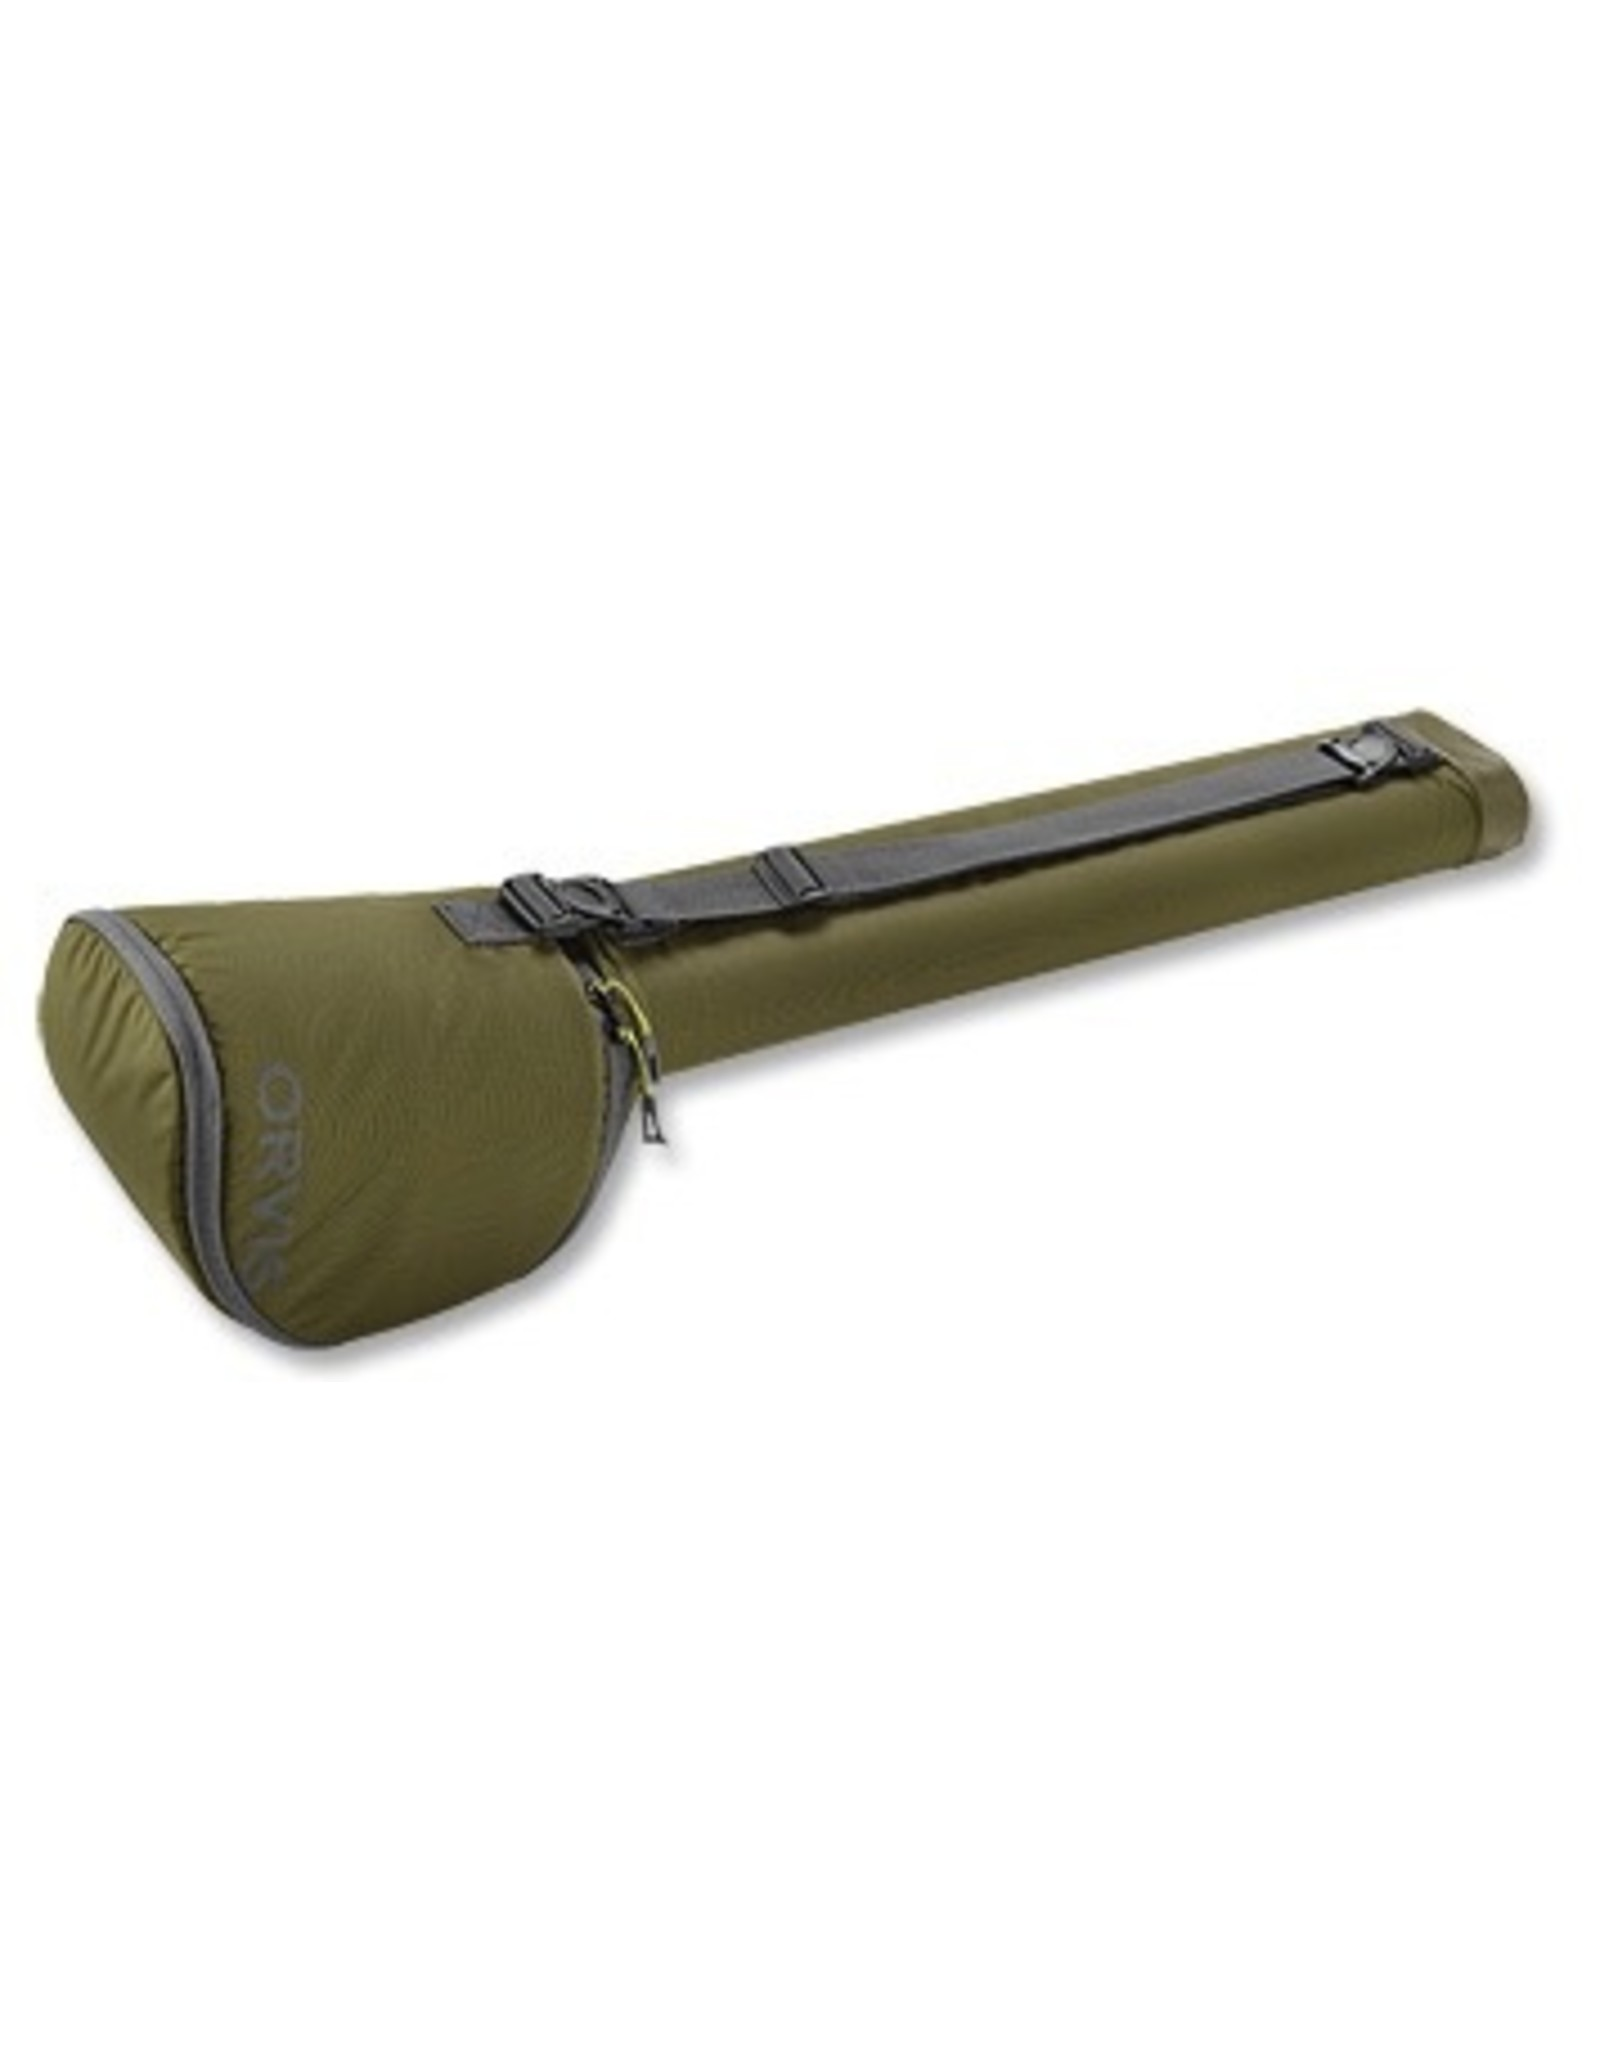 Orvis Safe Passage Single Rod/Reel Case